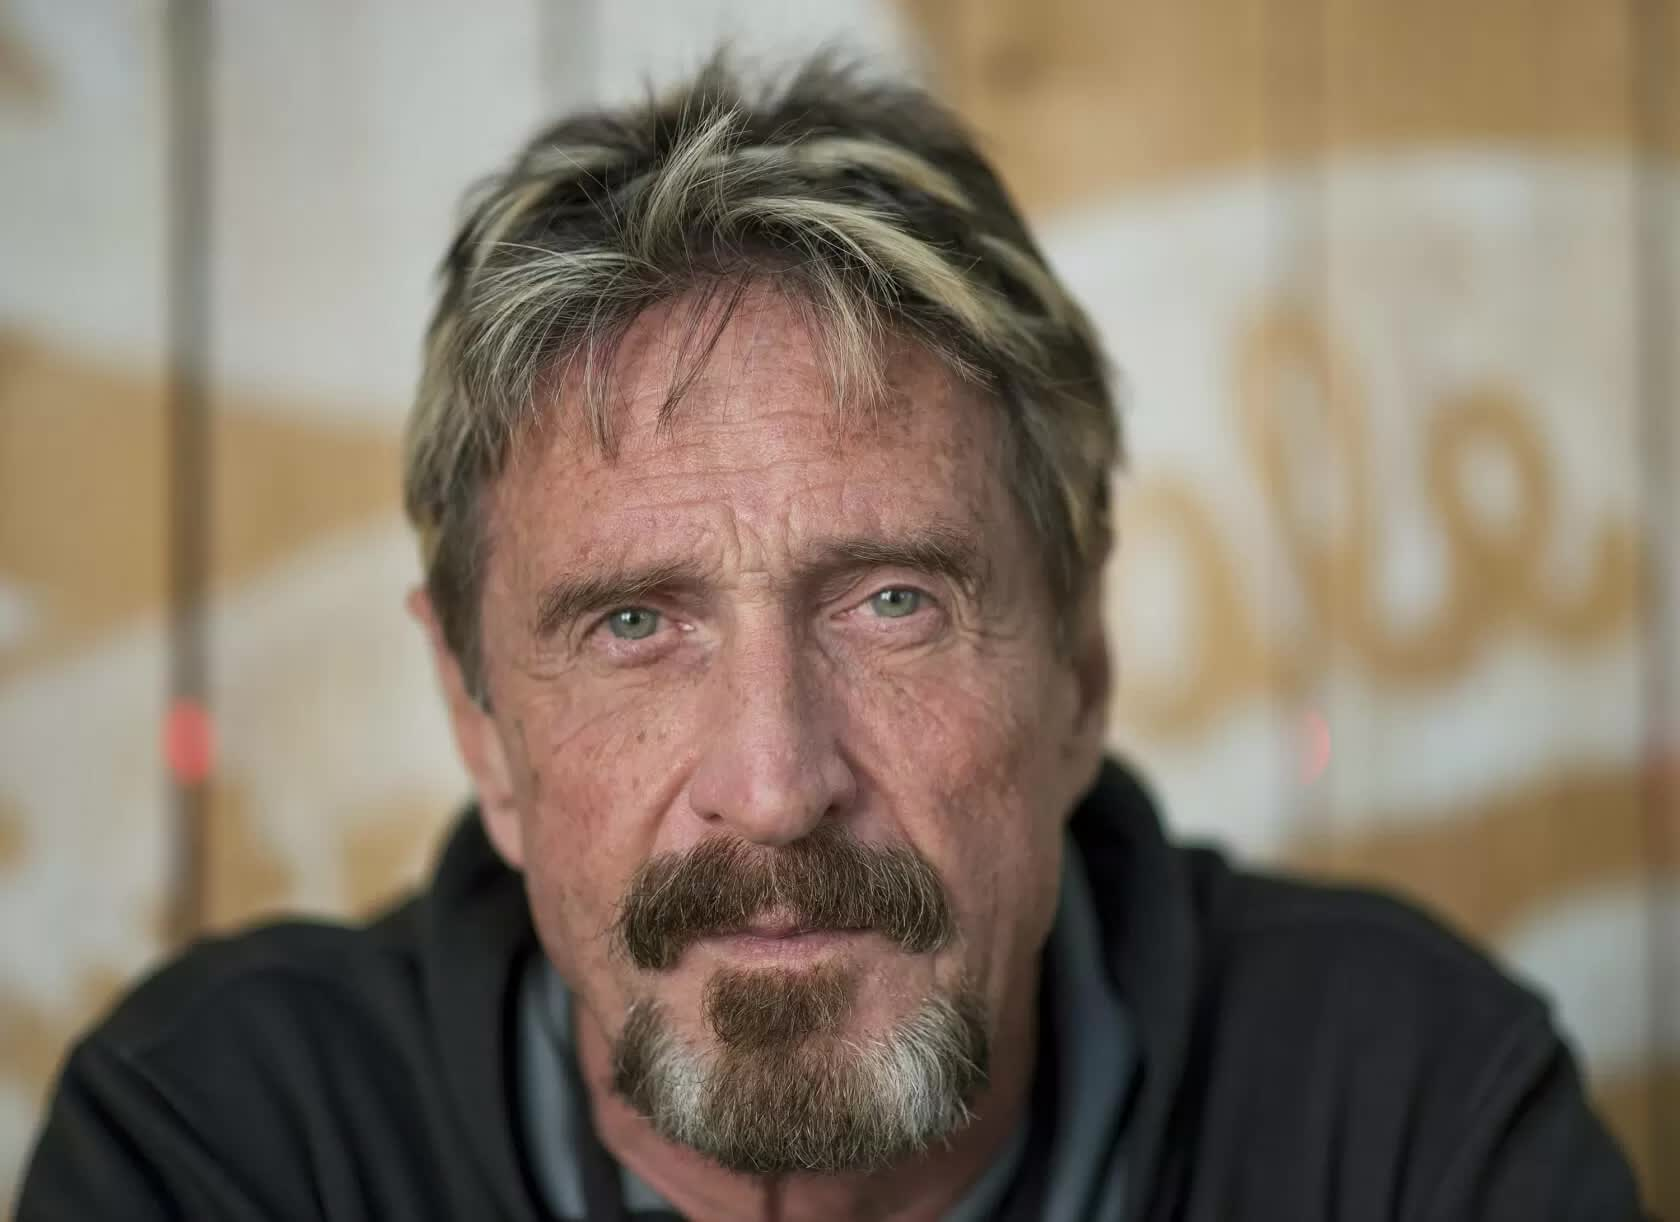 John McAfee faces fraud and money laundering charges in crypto 'pump-and-dump' scheme